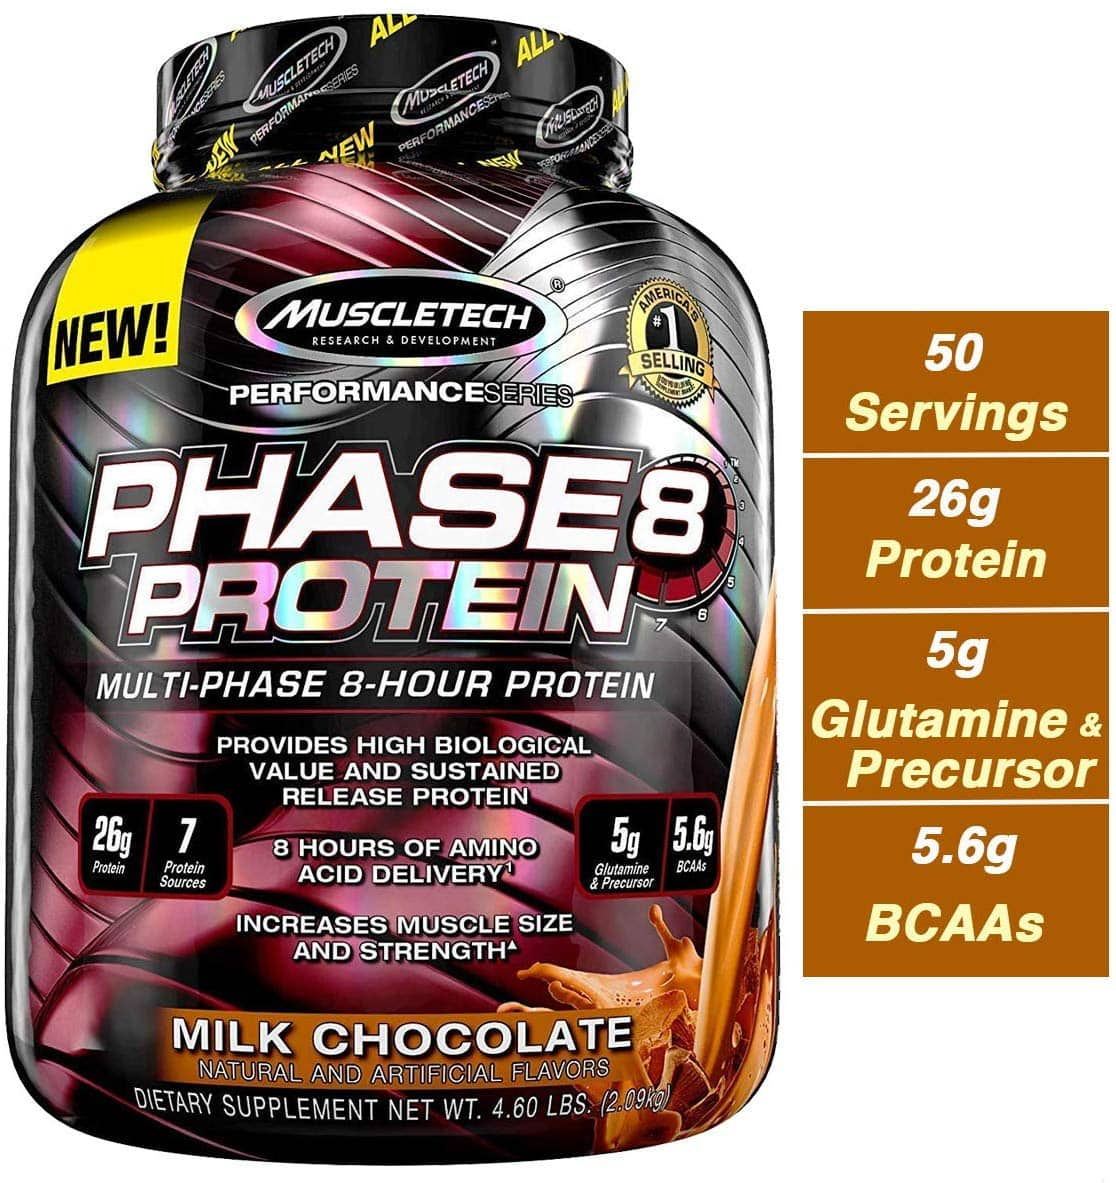 MuscleTech Phase8 Whey Protein Powder Blend, Sustained Release 8-Hour Protein Shake, Milk Chocolate, 4.6 Pound for as low as $23.89 AC & SS @ Amazon